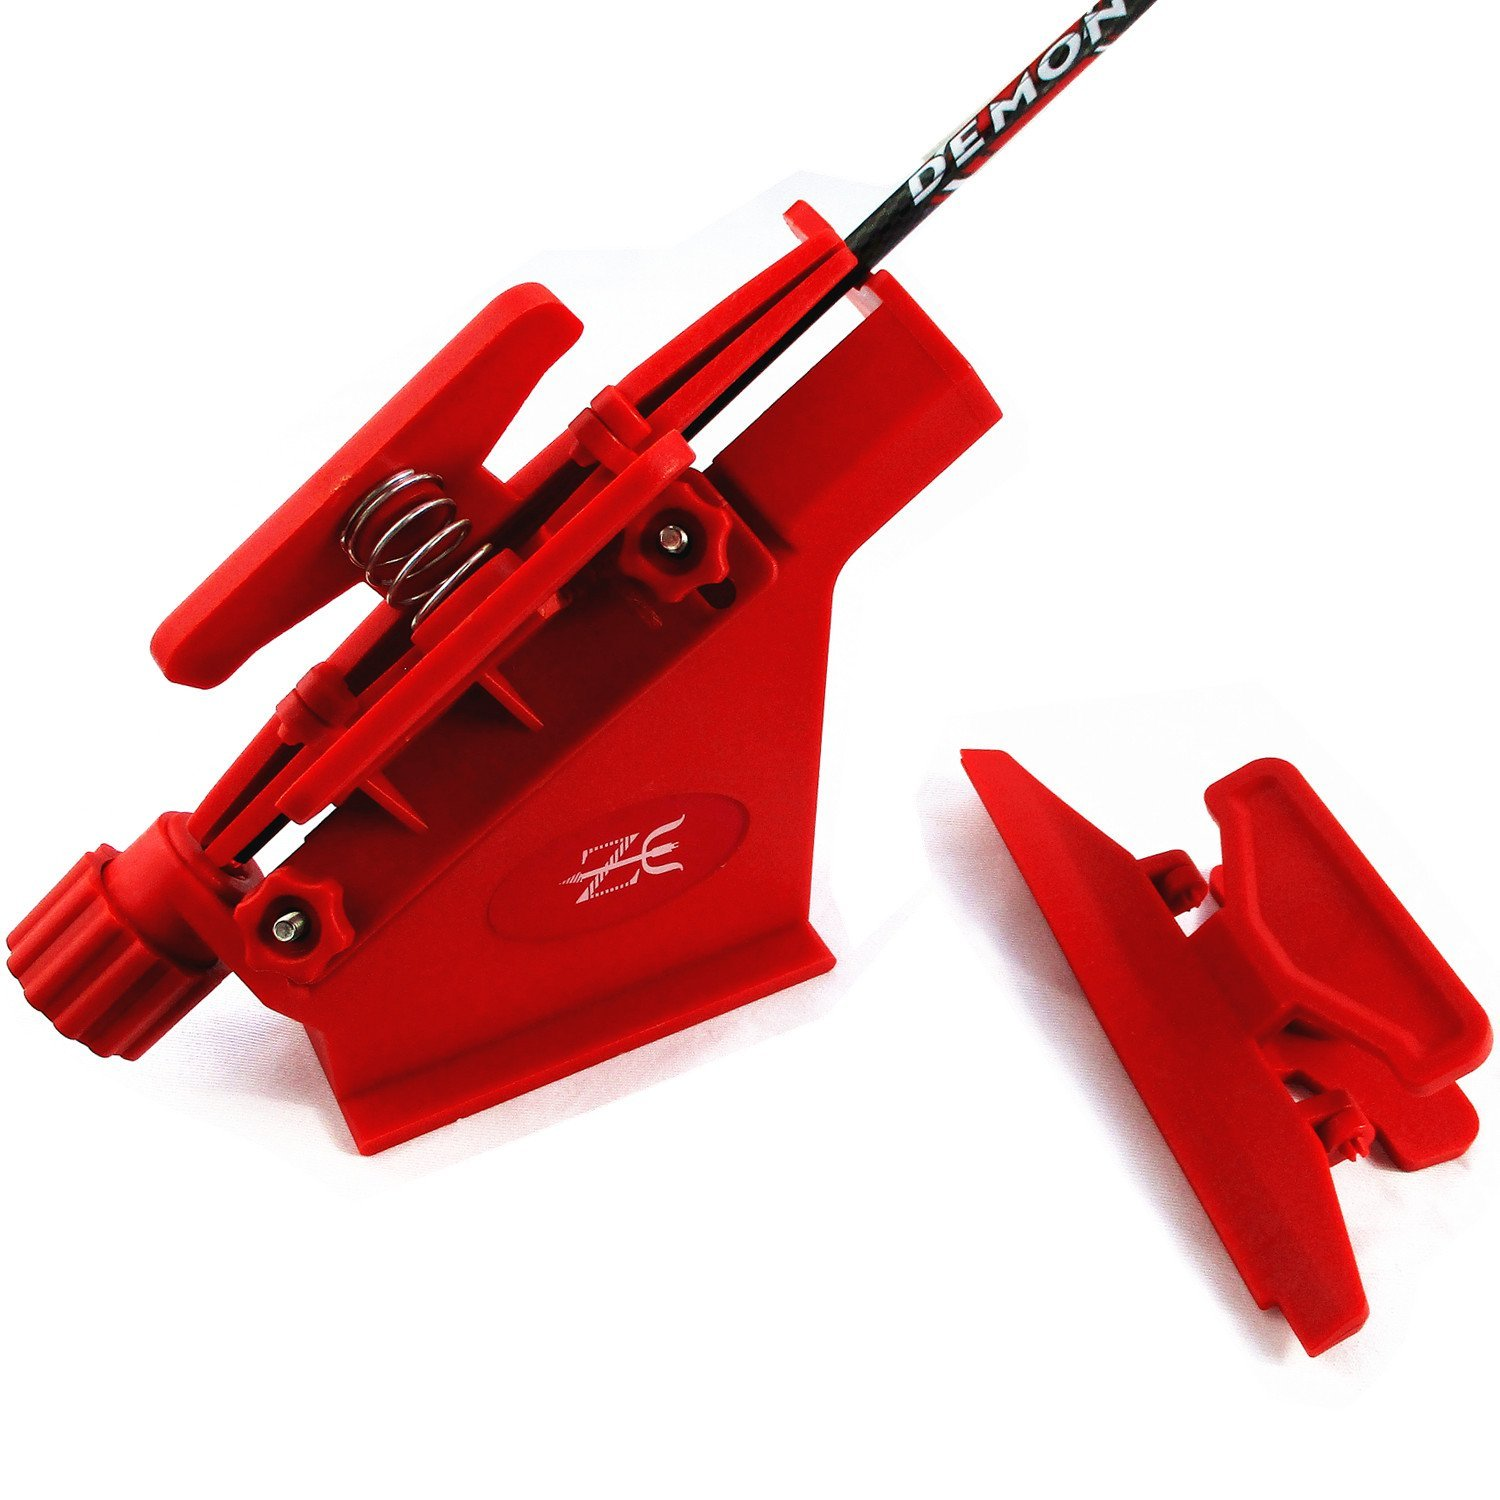 MS JUMPPER Adjustable Fletching Jig Straight and Helix Tool with Clamp for DIY Archery Arrows (Red) by MS JUMPPER